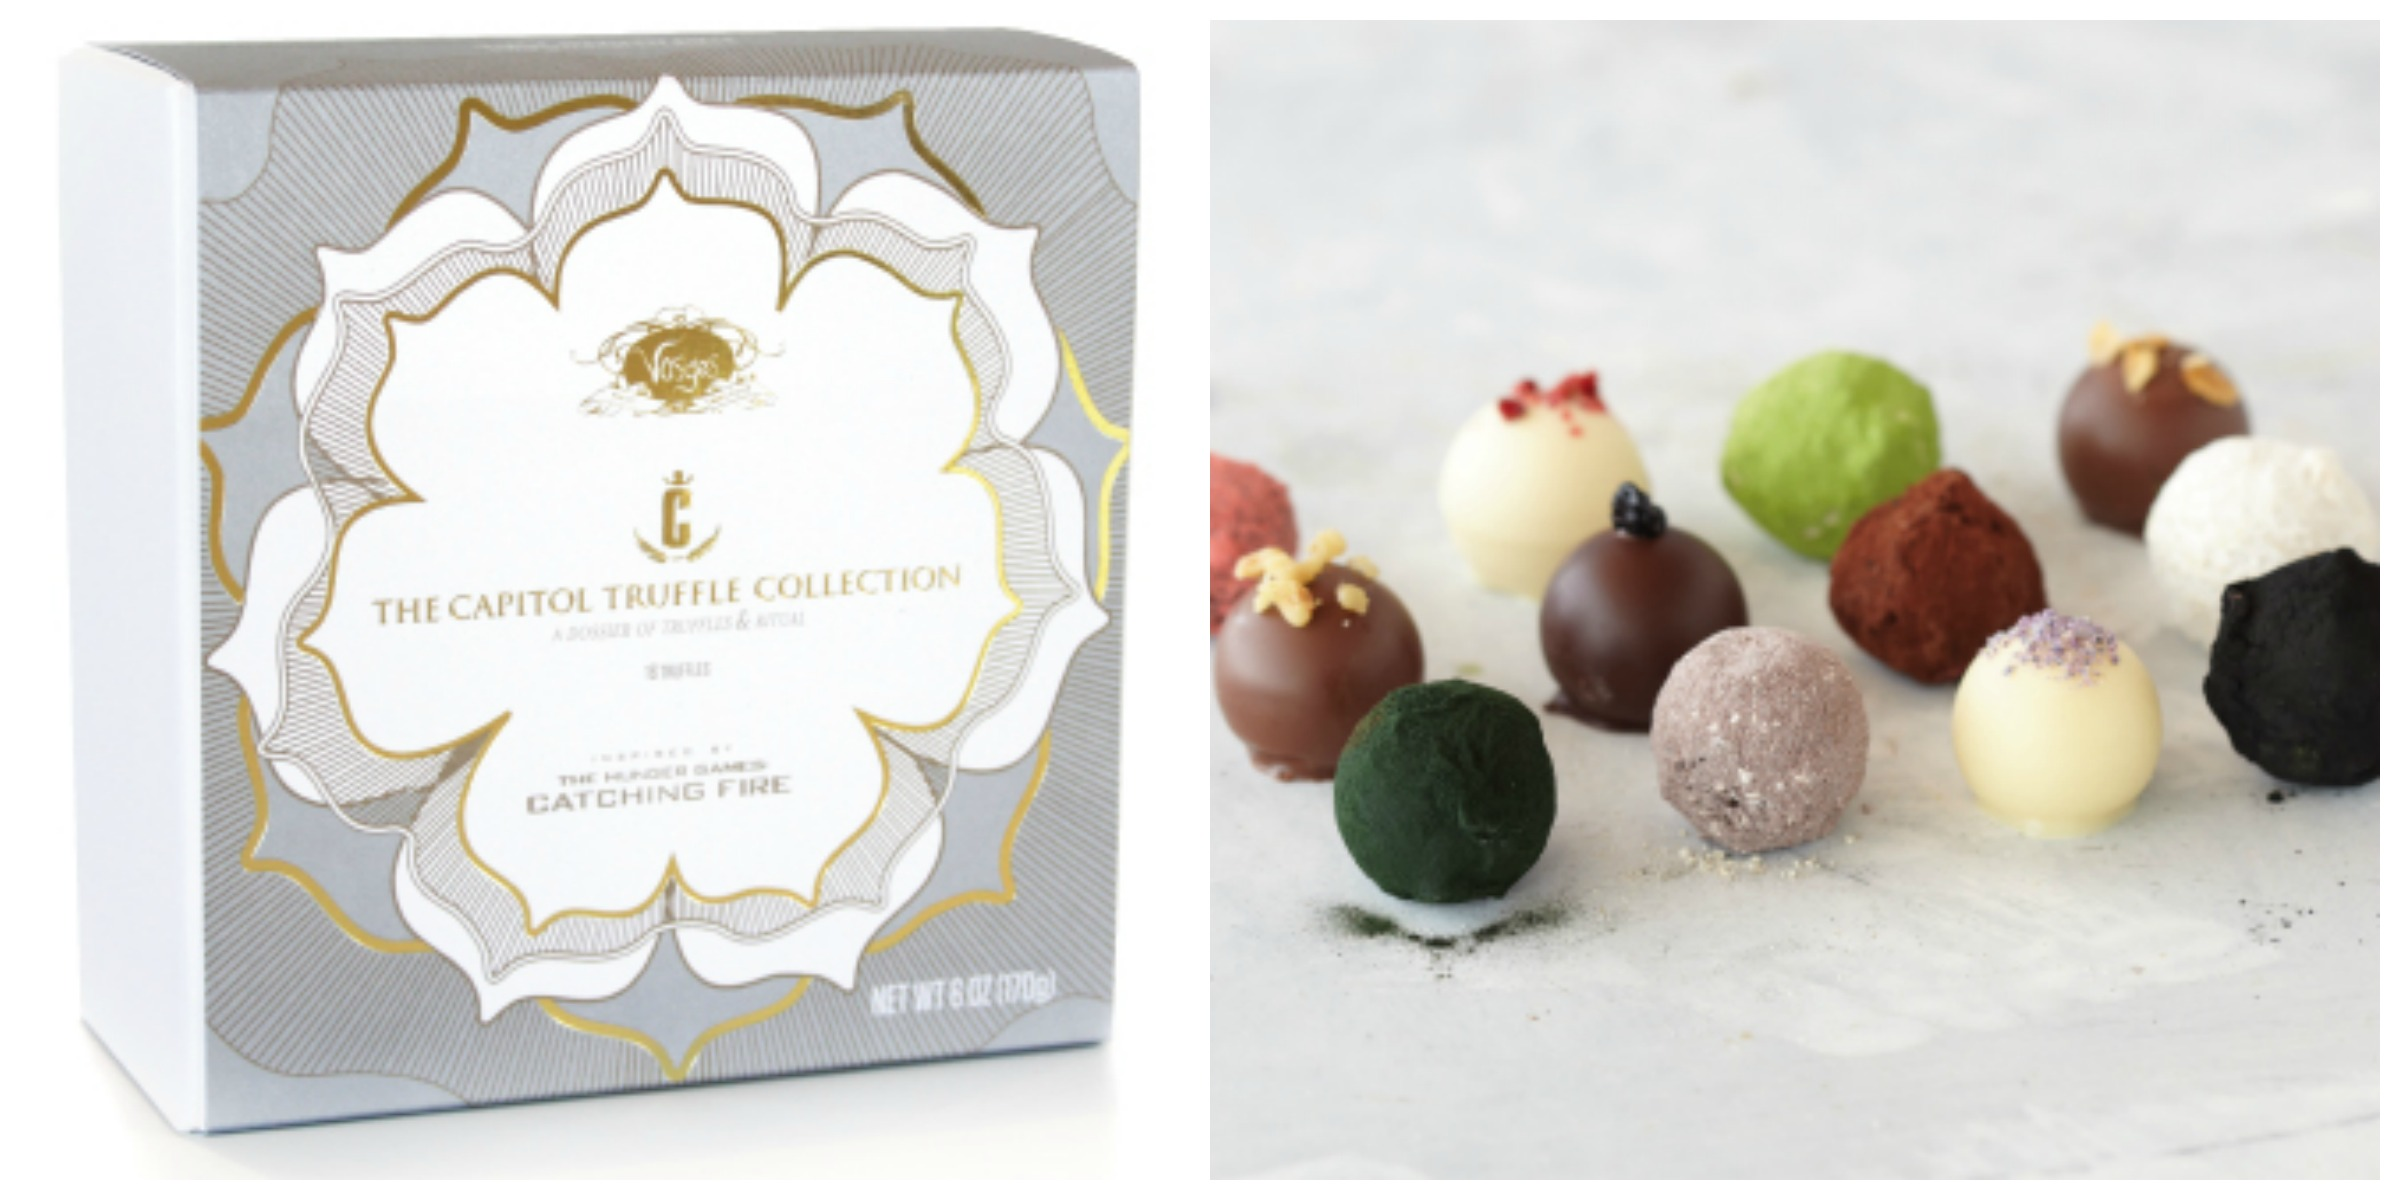 Hunger Games chocolates by Vosges:  I volunteer as tribute!